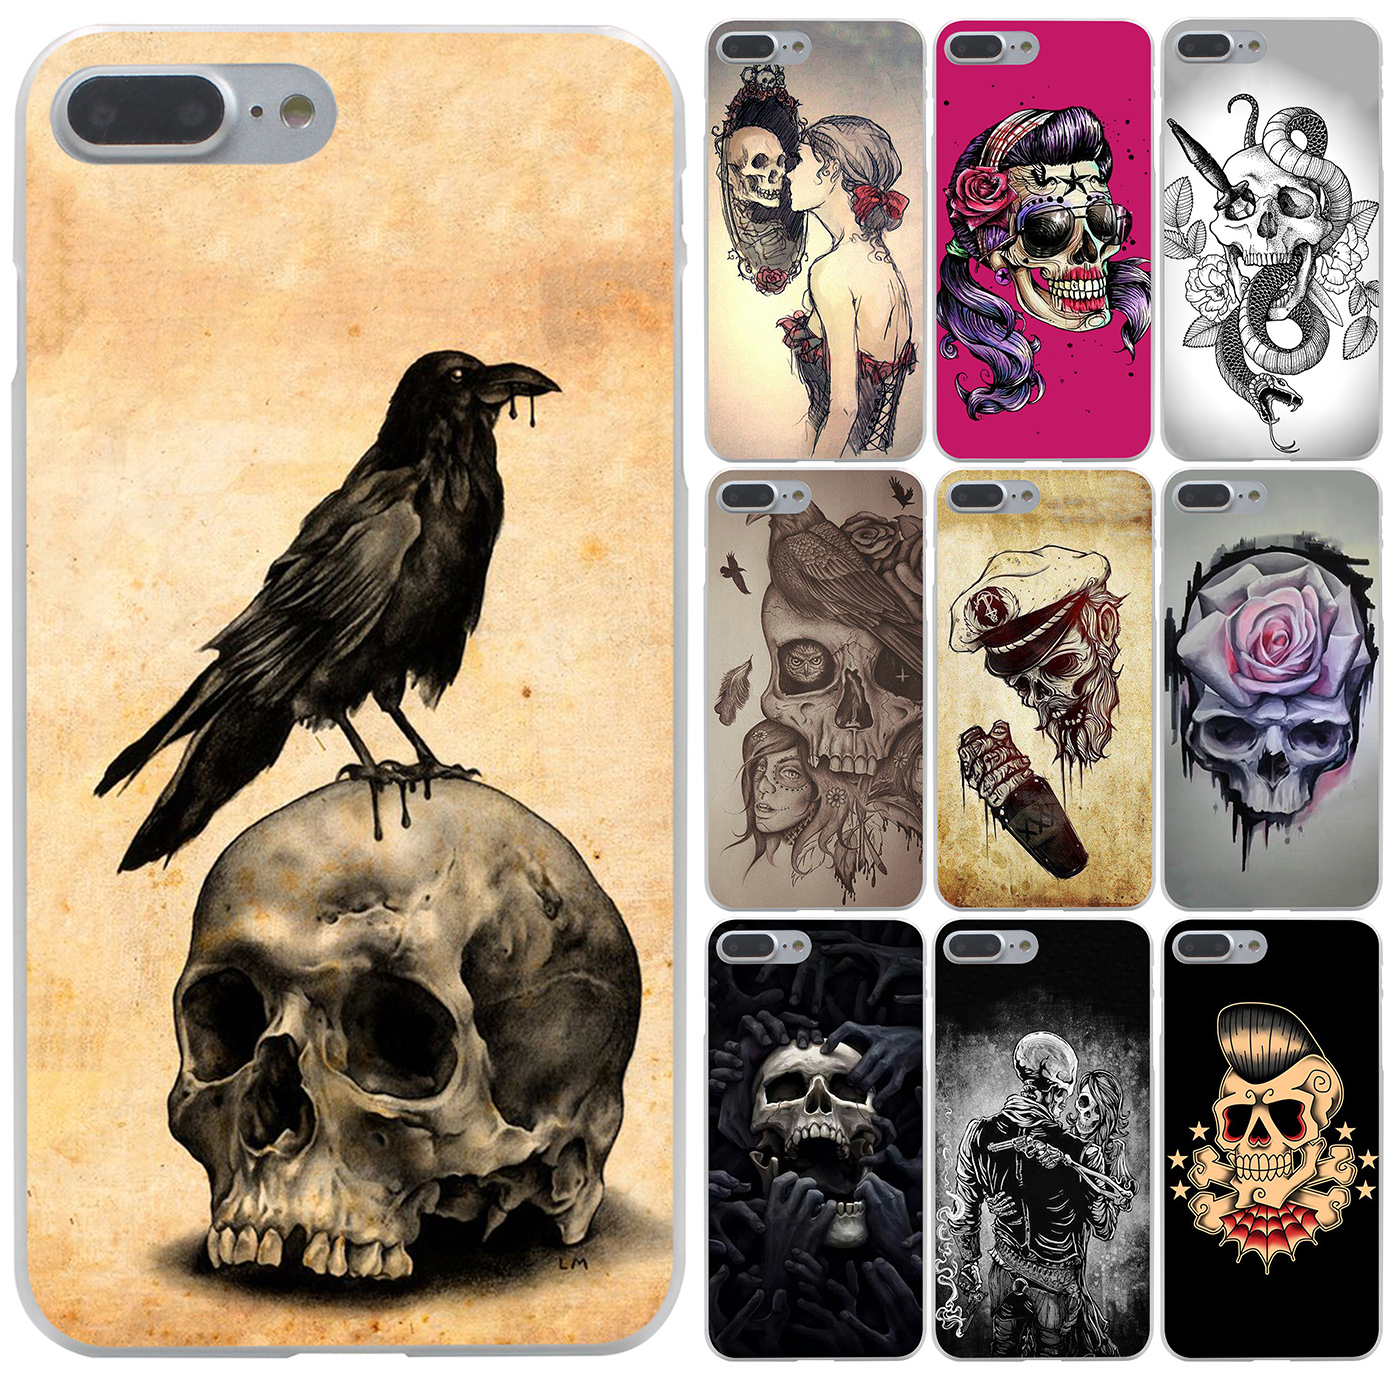 flower Skull Lady Man Painted Hard Case Transparent Cover for iPhone 7 7 Plus 6 6s Plus 5 5s 5c SE 4 4s(China (Mainland))